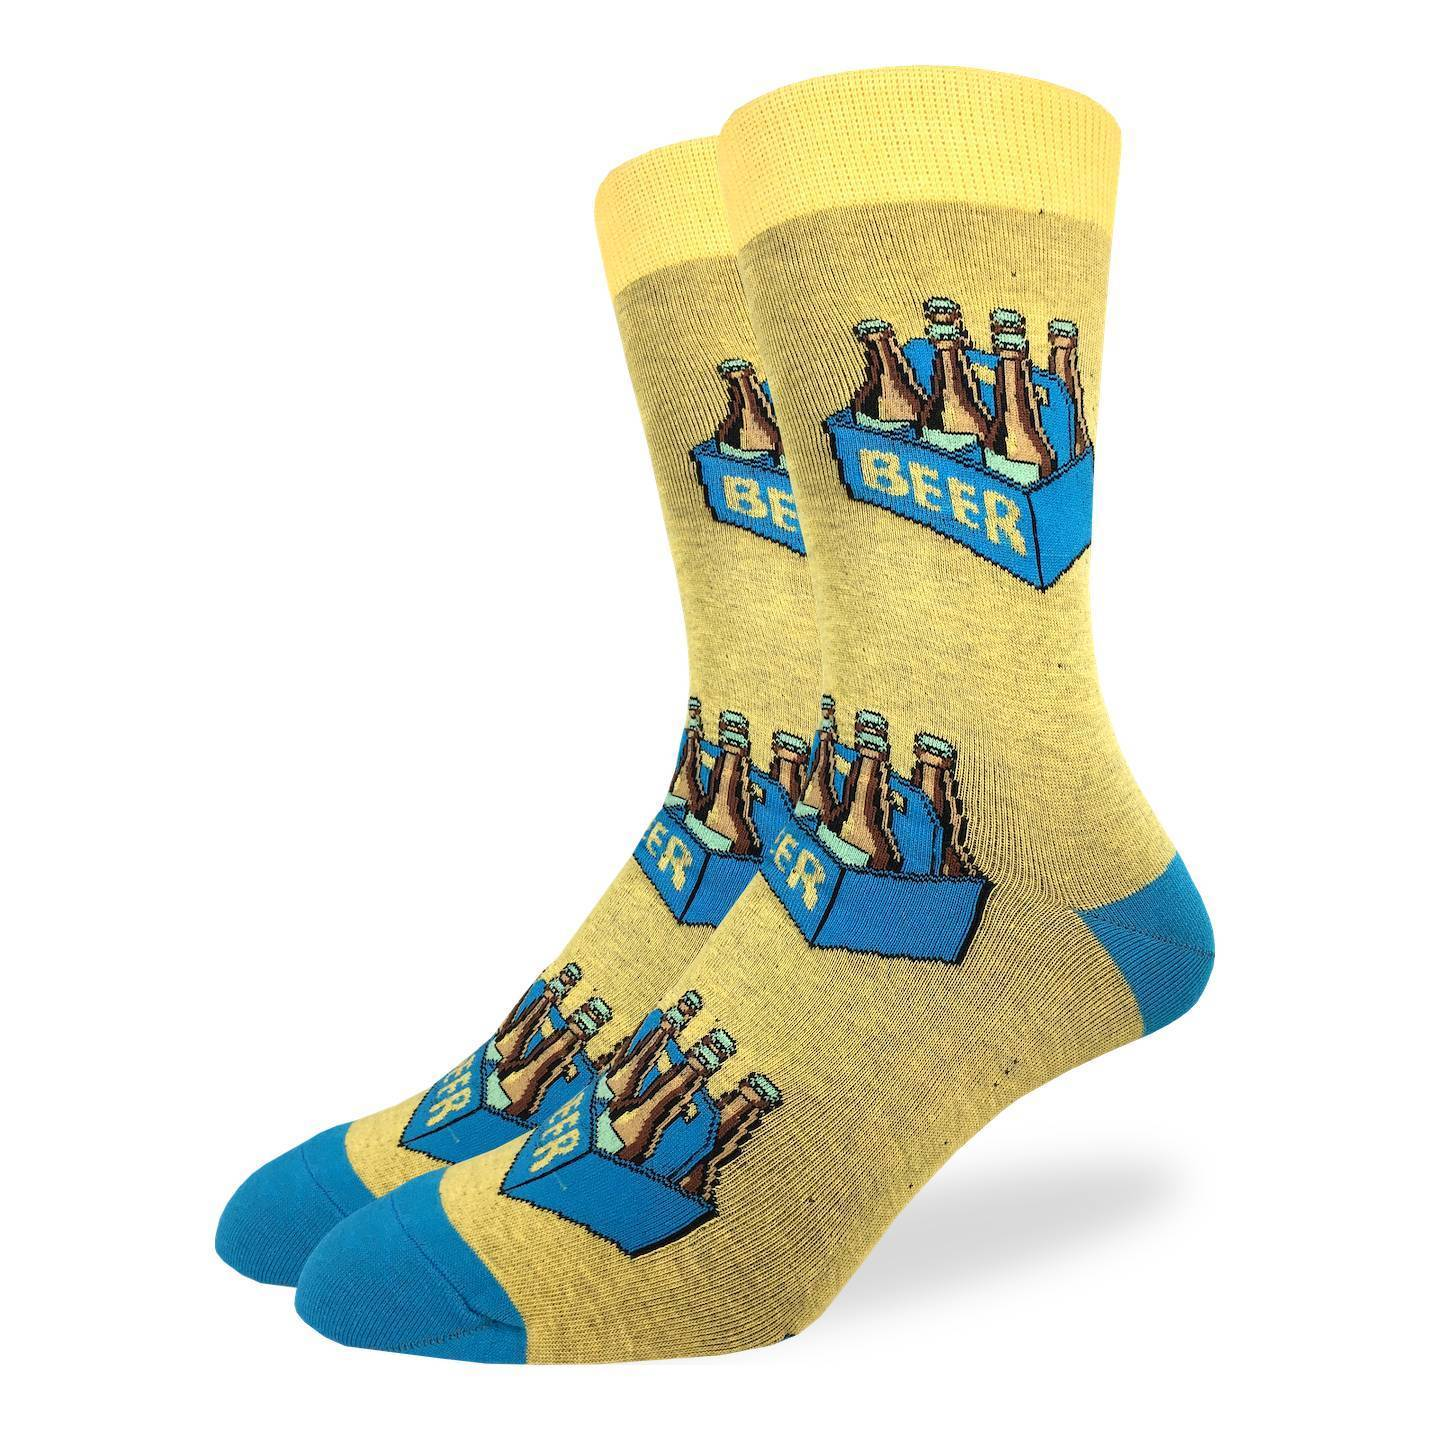 Men's Six Pack of Beer Socks - Good Luck Sock